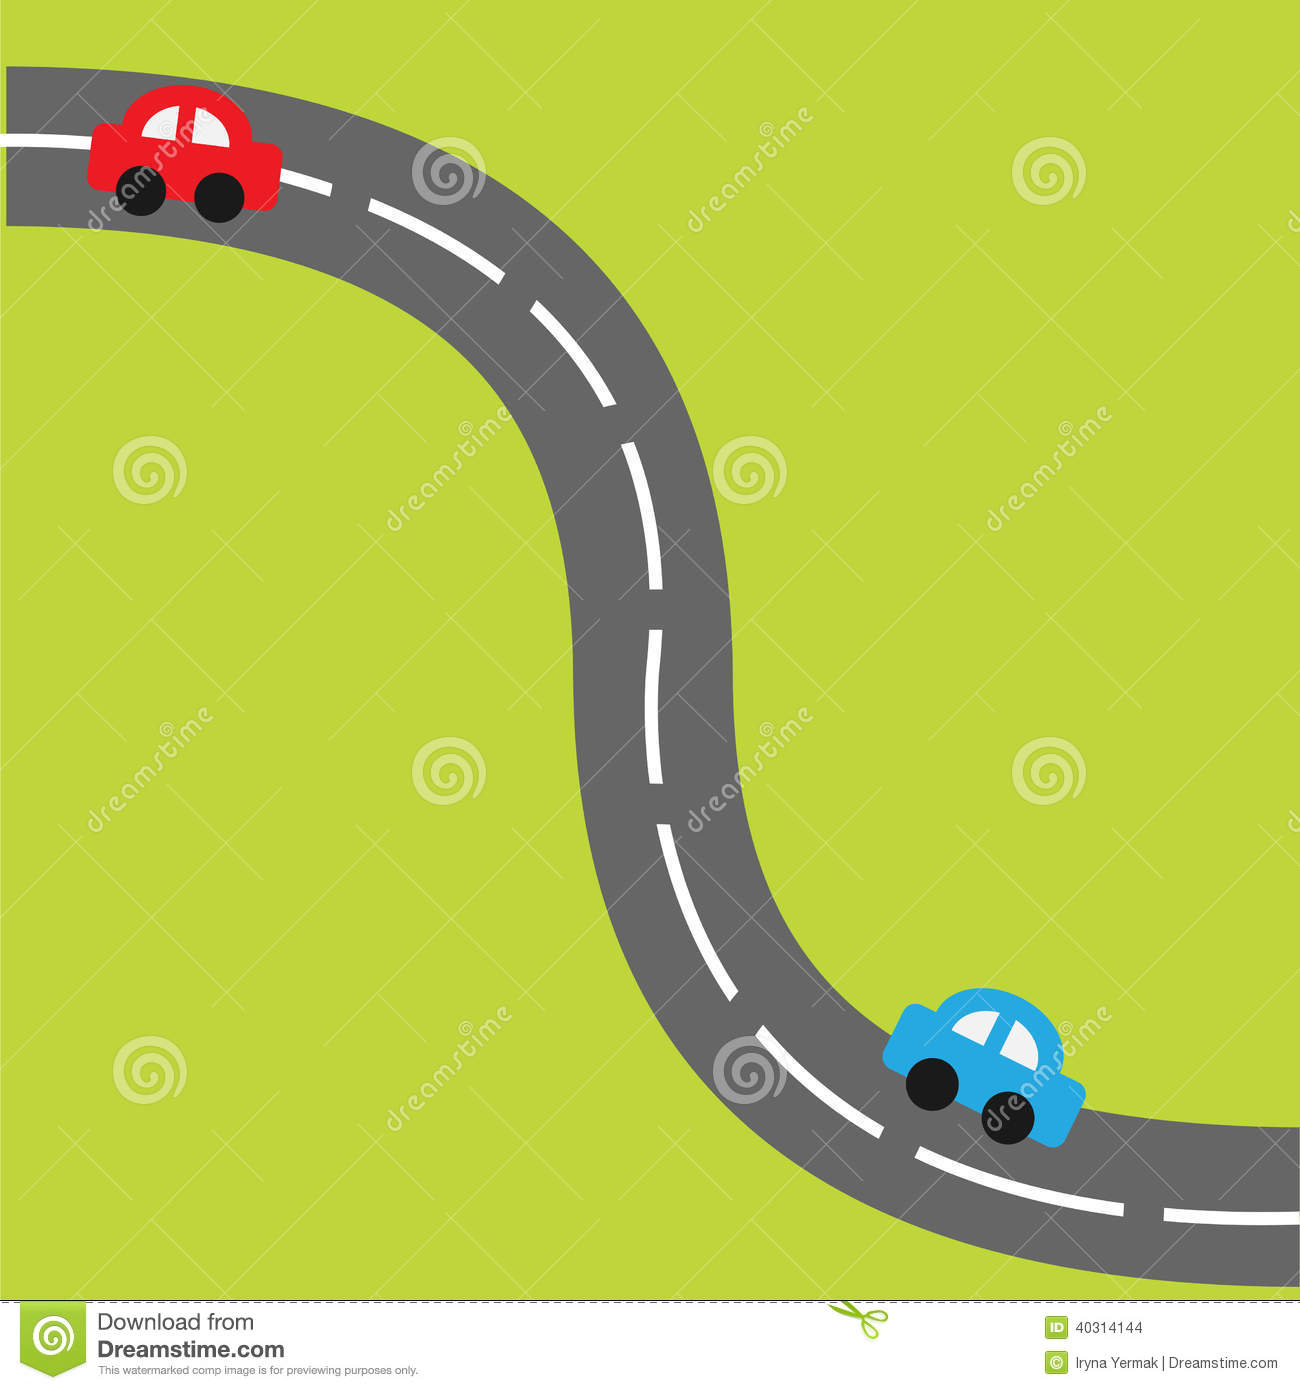 Street Dreams Auto >> Background With Road And Cartoon Cars. Stock Vector - Image: 40314144